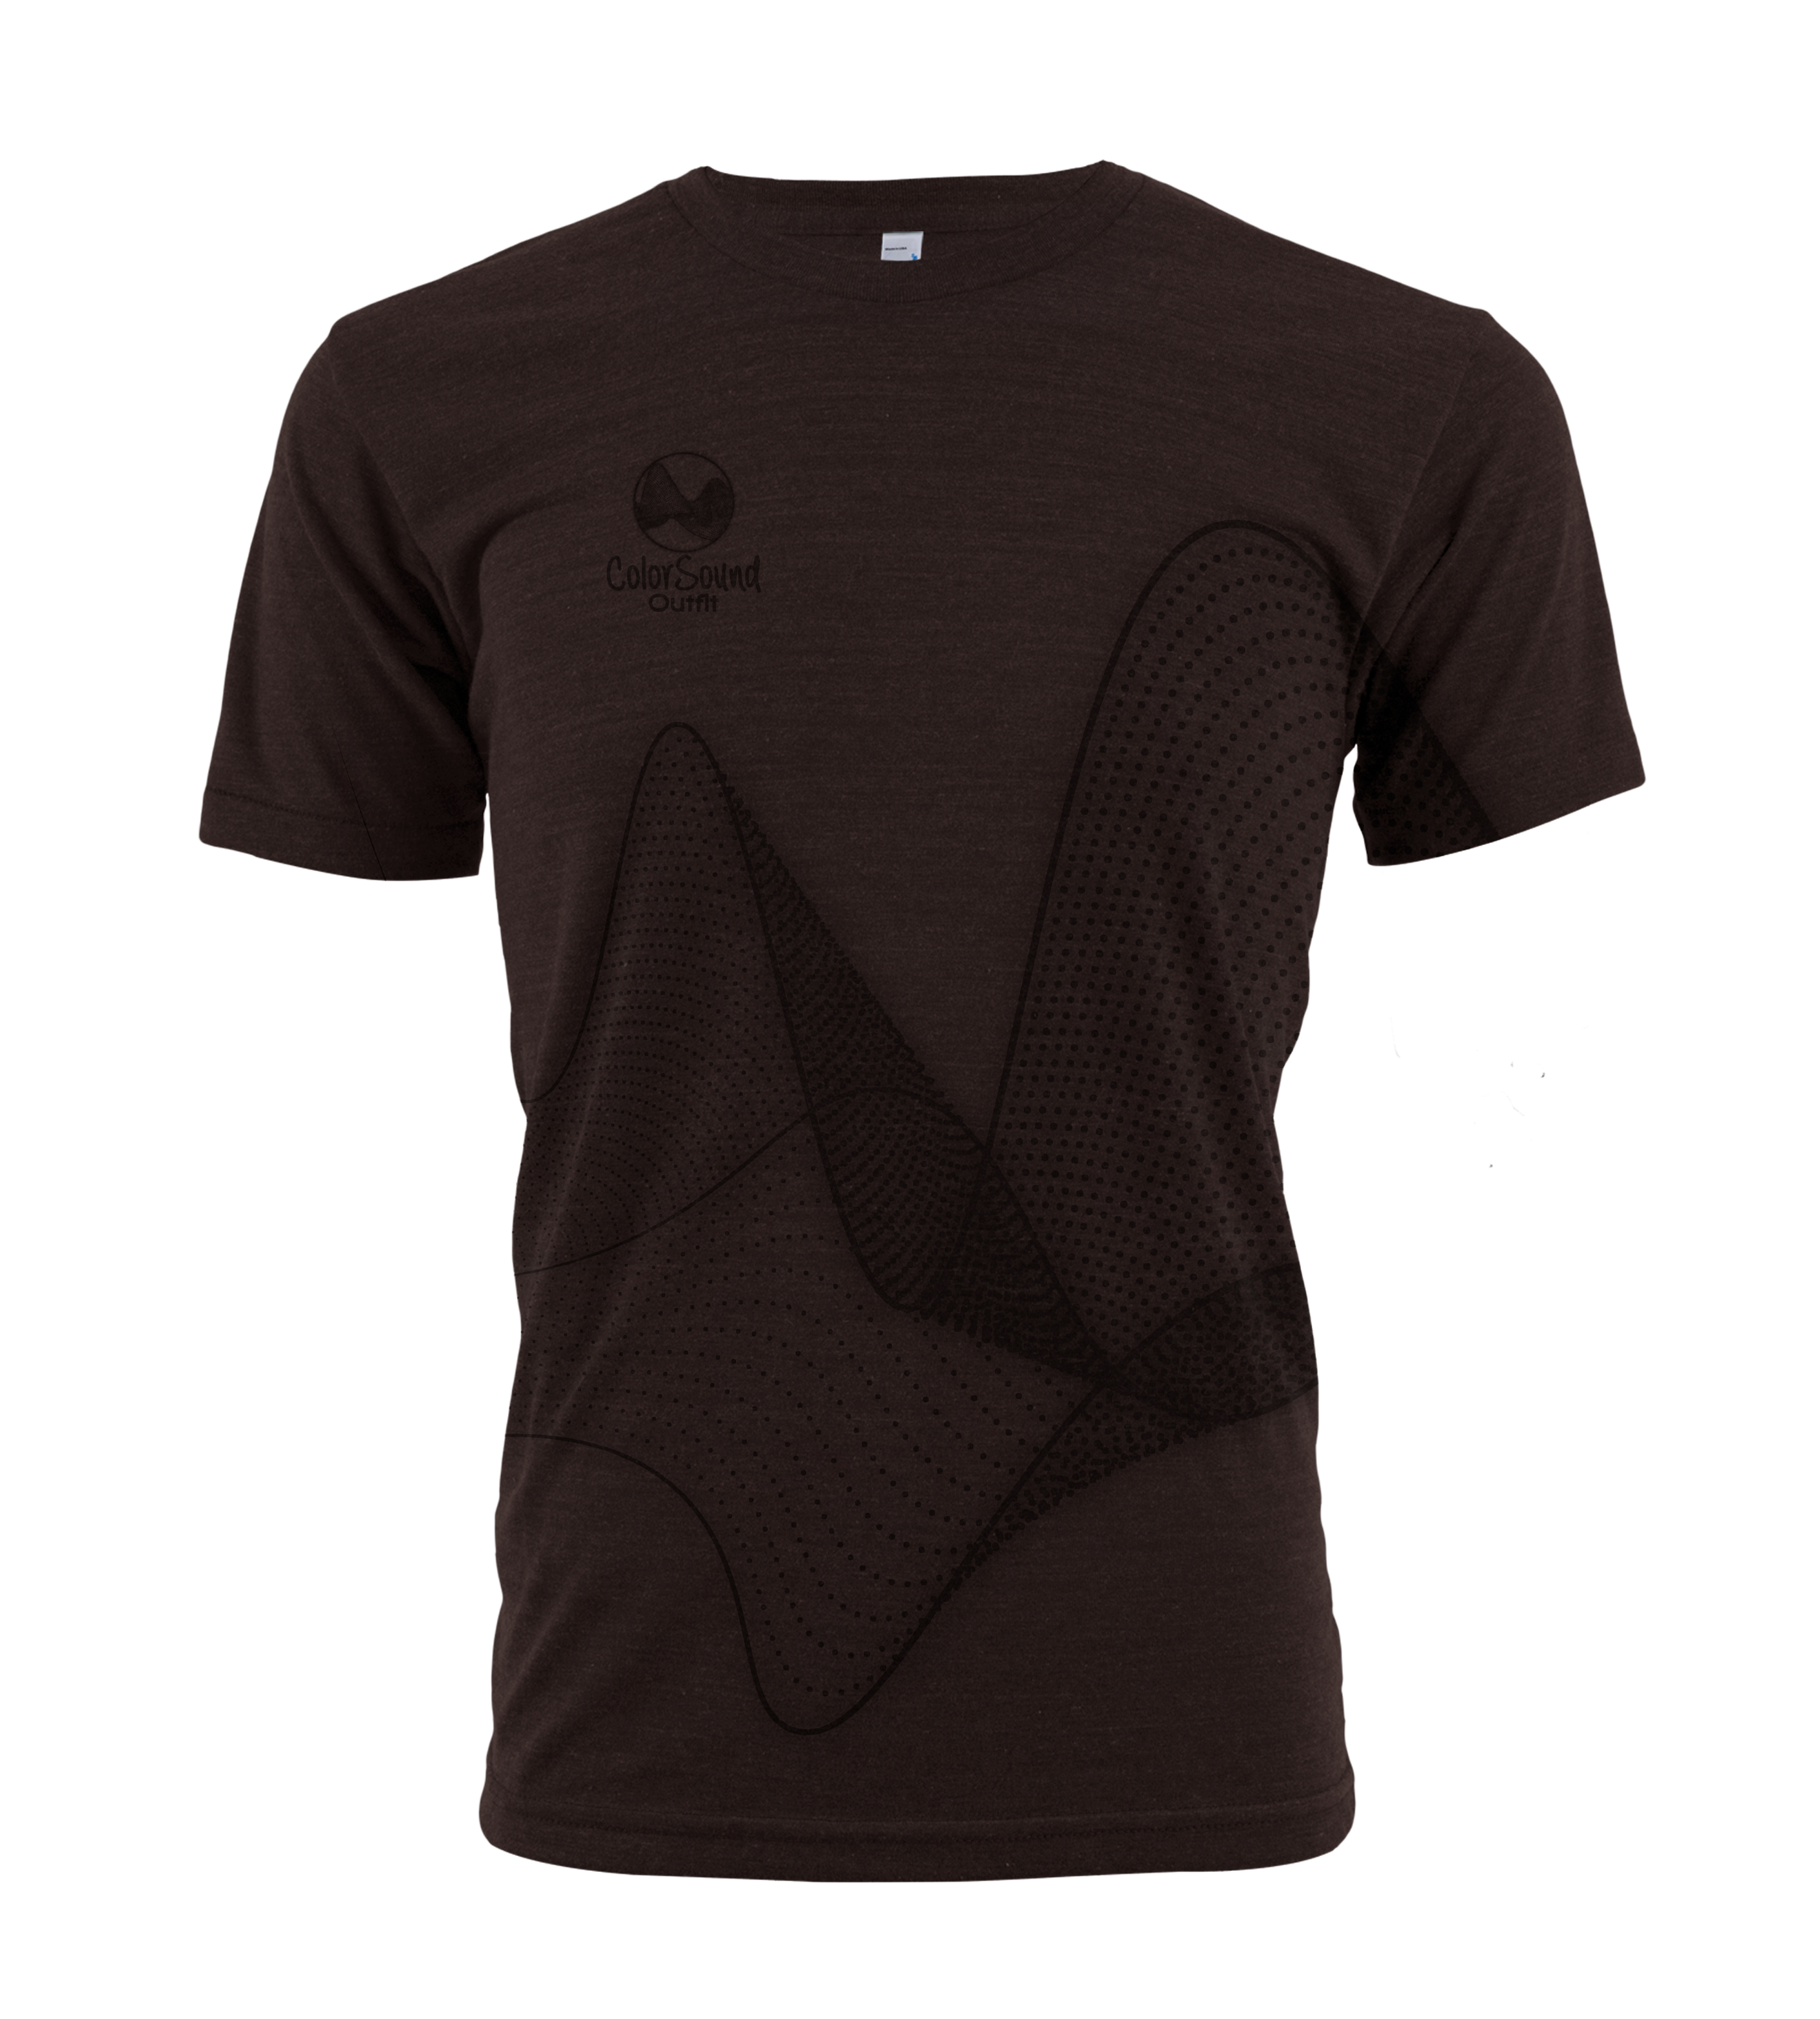 Elemental T Shirt Chocolate Male Colorsound Outfit